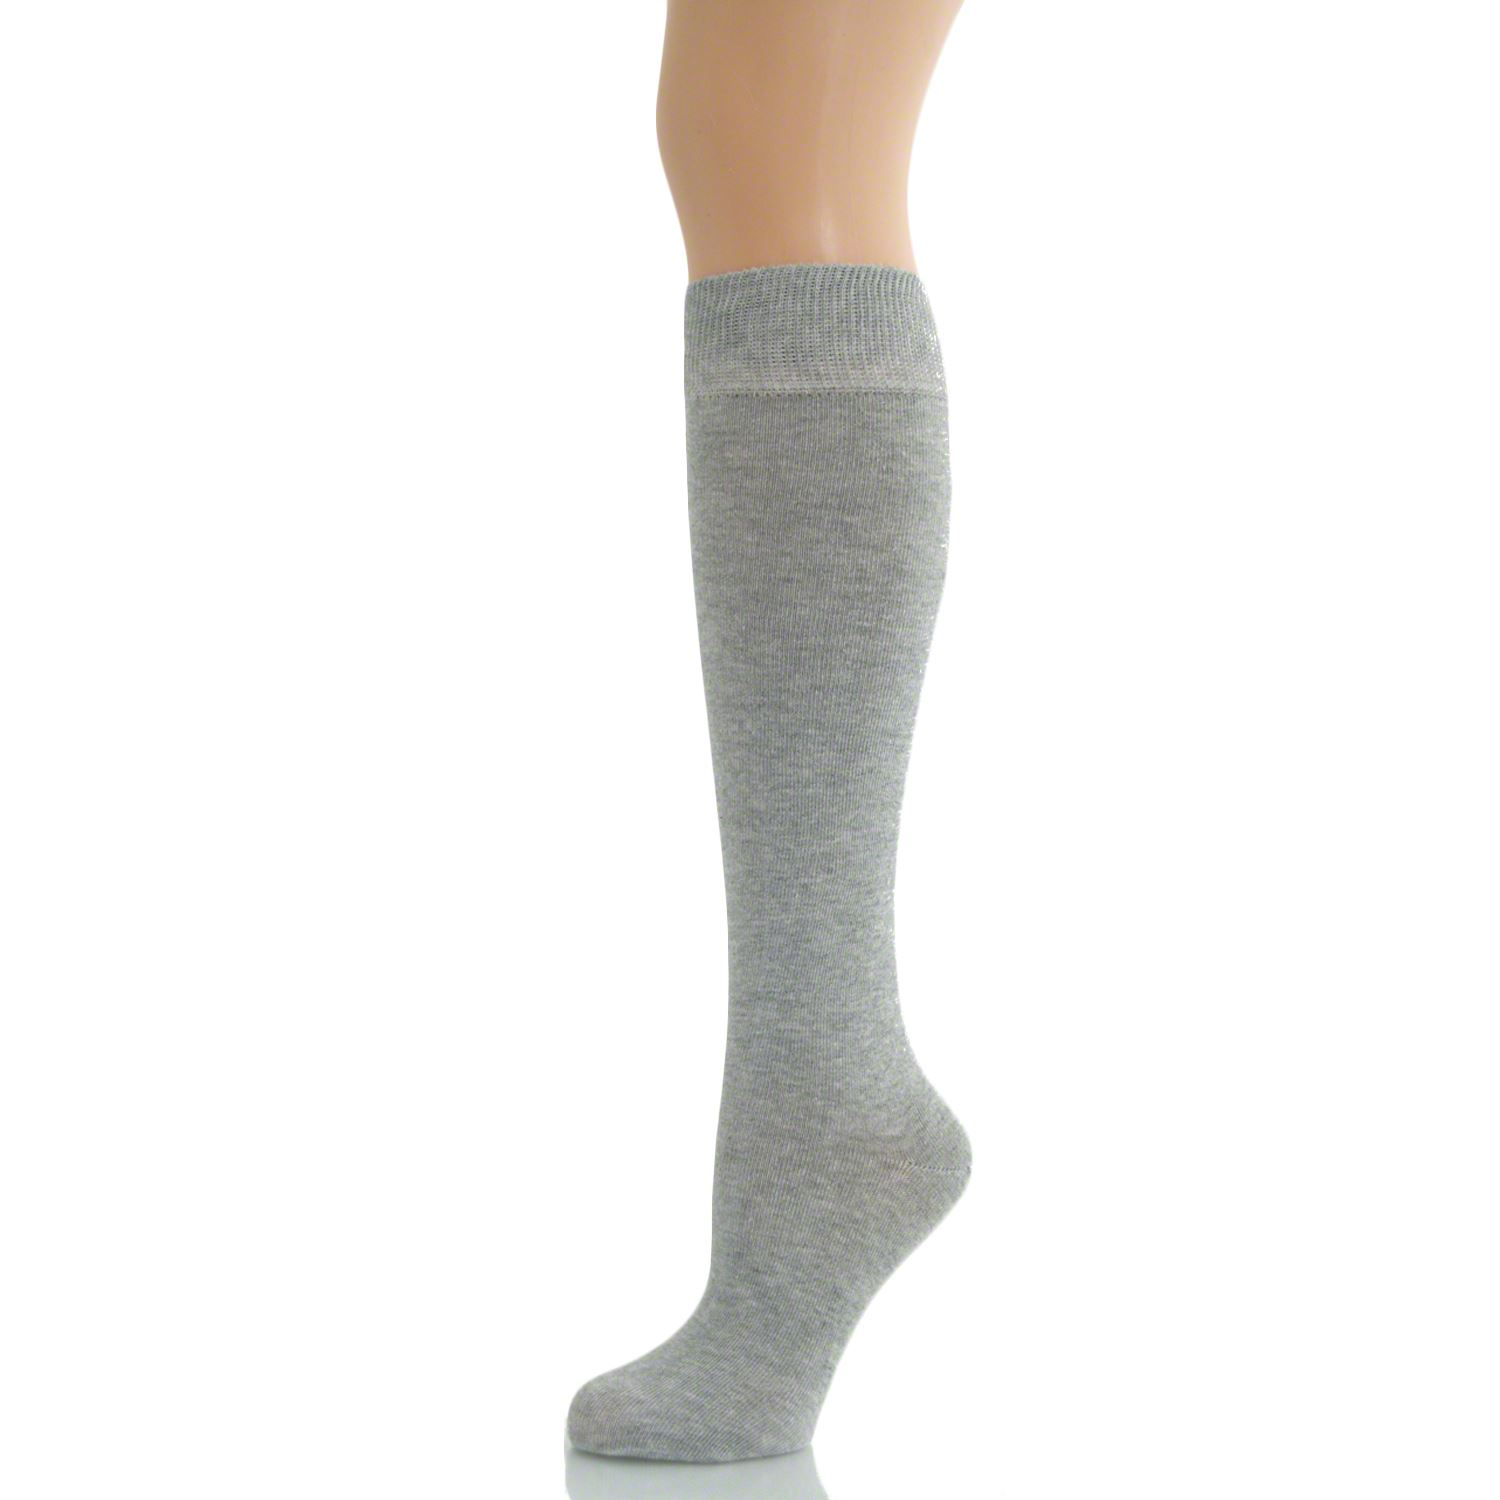 Find great deals on eBay for Mens Knee High Socks in Men's Socks. Shop with confidence.